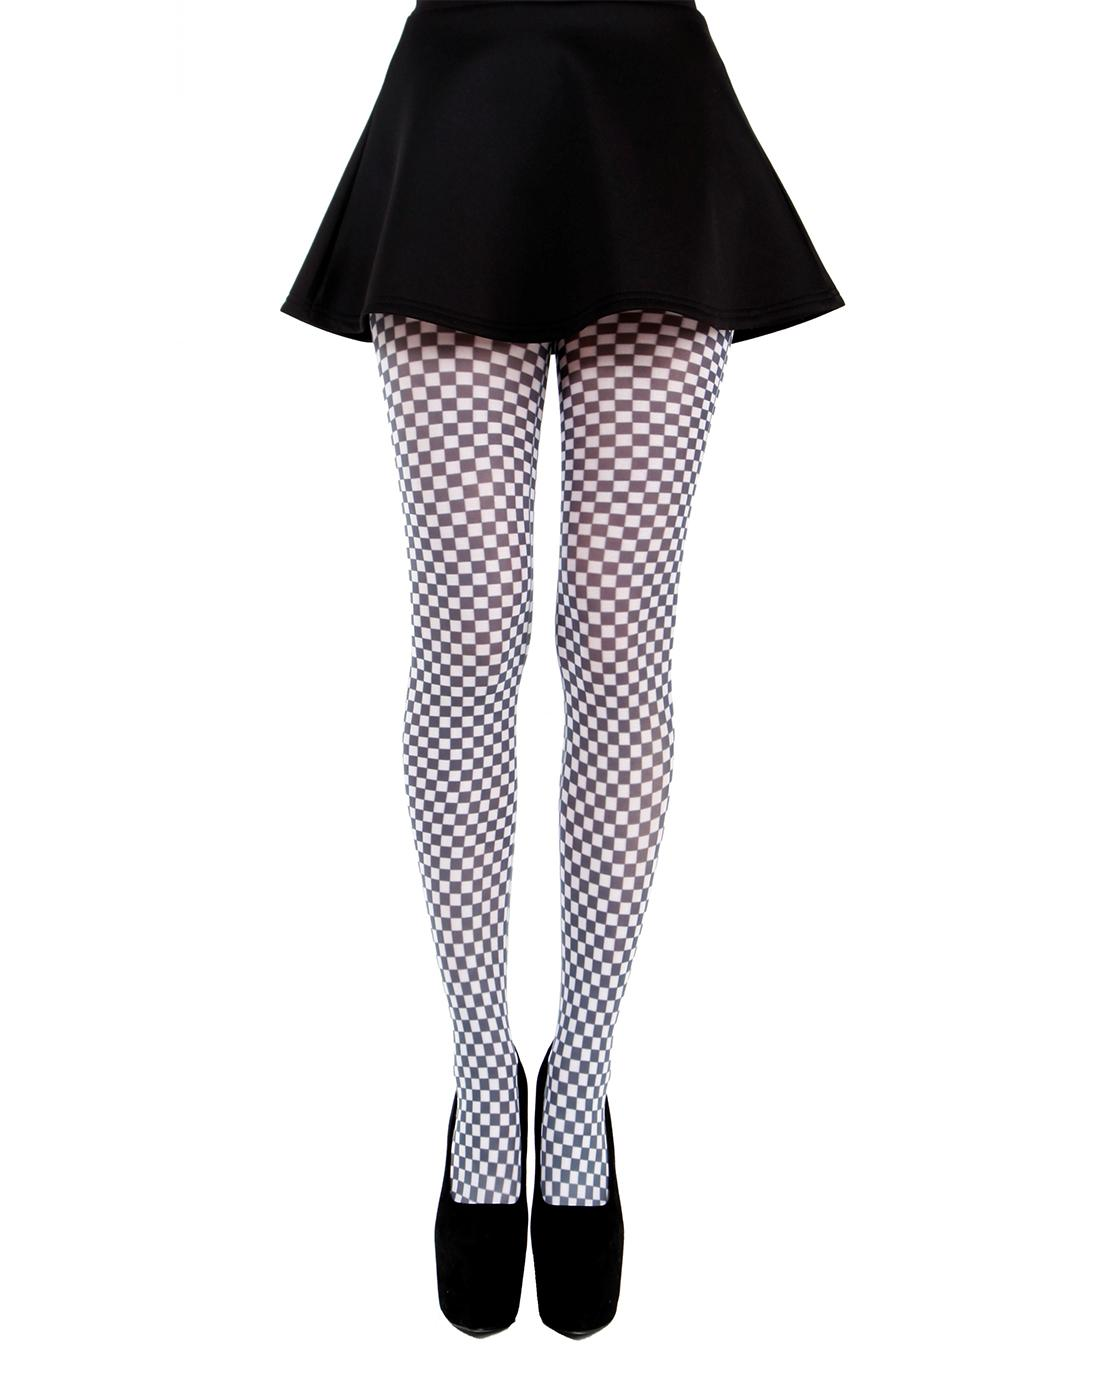 + PAMELA MANN Retro 60s Mod Gingham Print Tights